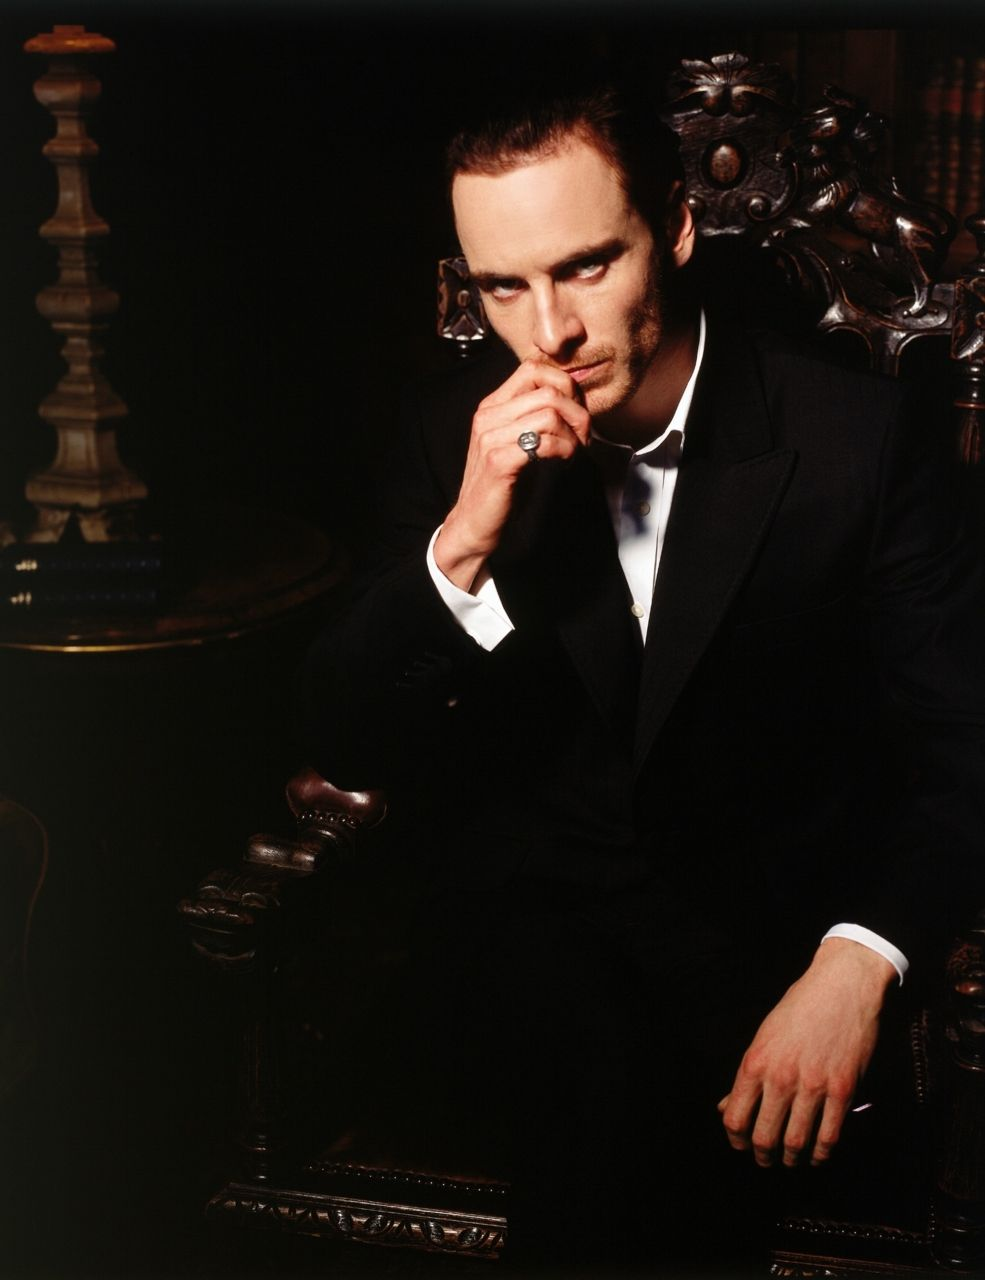 Michael Fassbender as fallen angel Azazeal on HEX. SO glad he's finally getting recognition for his acting. Been waiting since this show came out...